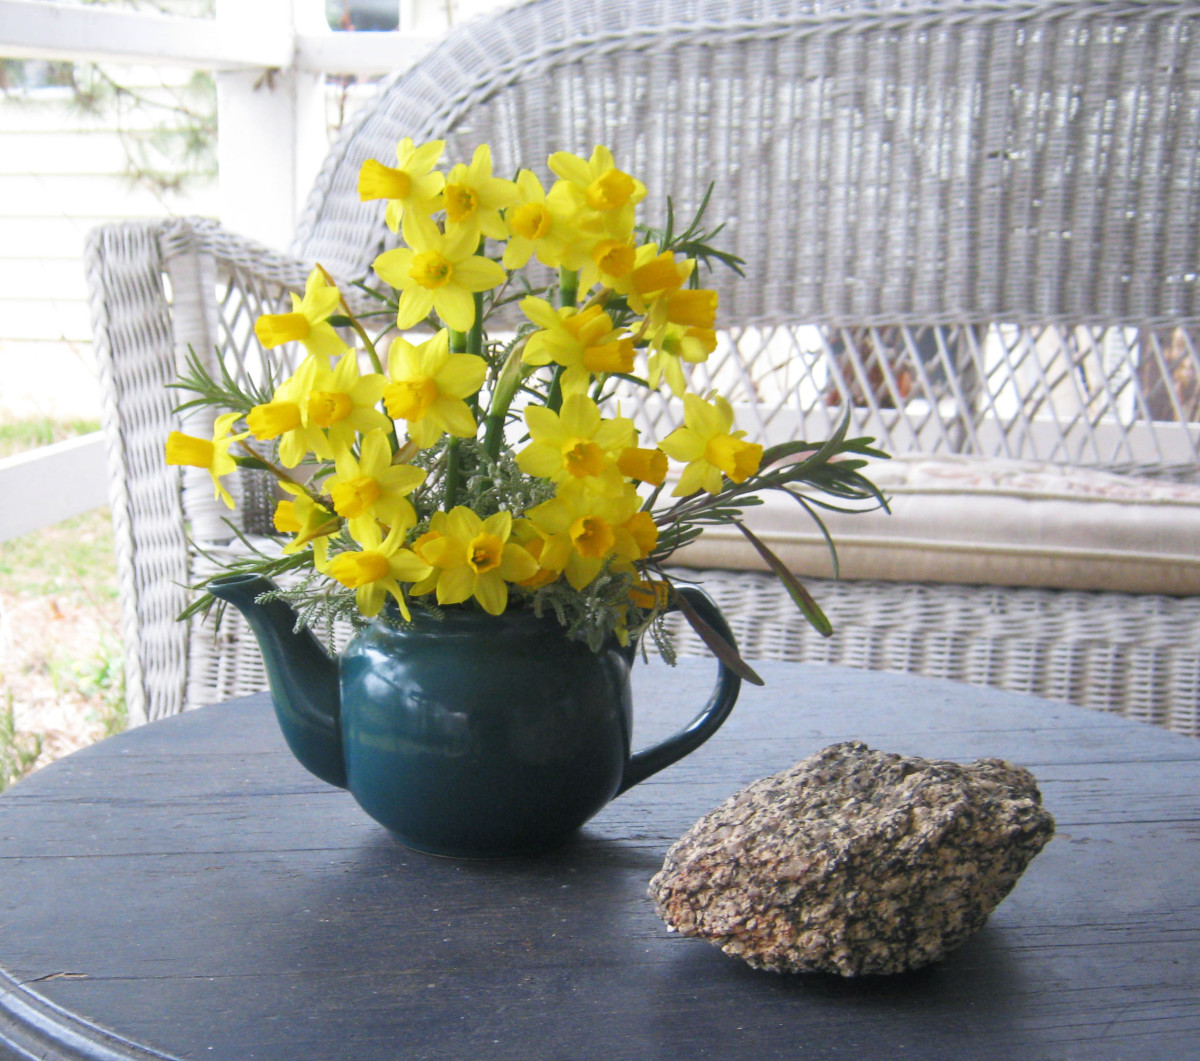 Dwarf daffodils in a small tea pot